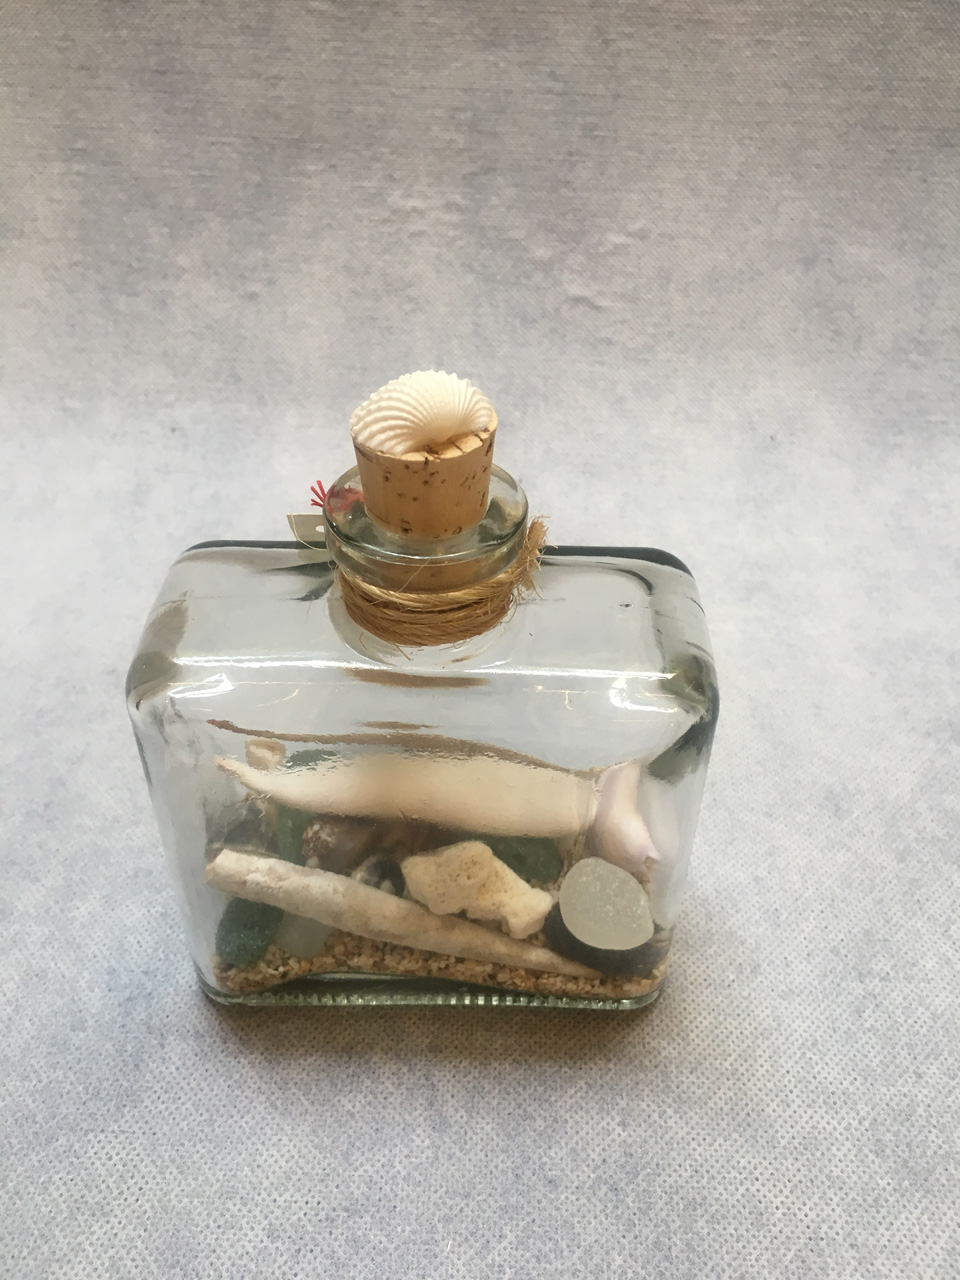 Beach Treasure Bottle by Richard Jordan filled with sea glass and shells